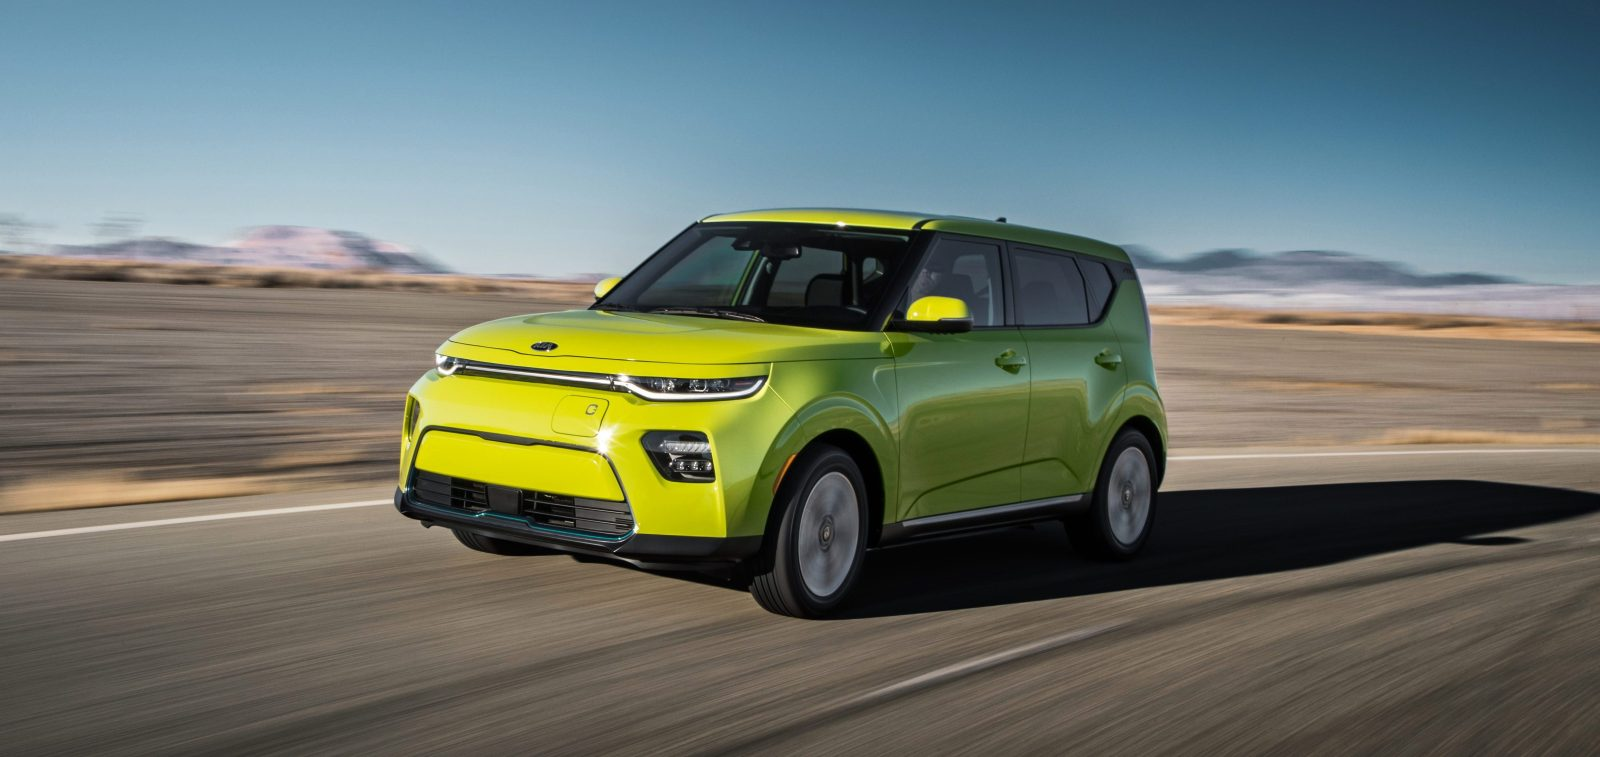 Electrek Charge Forward How To Build A Tesla 4 Battery Switch The Green Optimistic Kia Unveils 2020 Soul Ev With 201hp 64kw 200 Mile And 100kw Ccs Charging